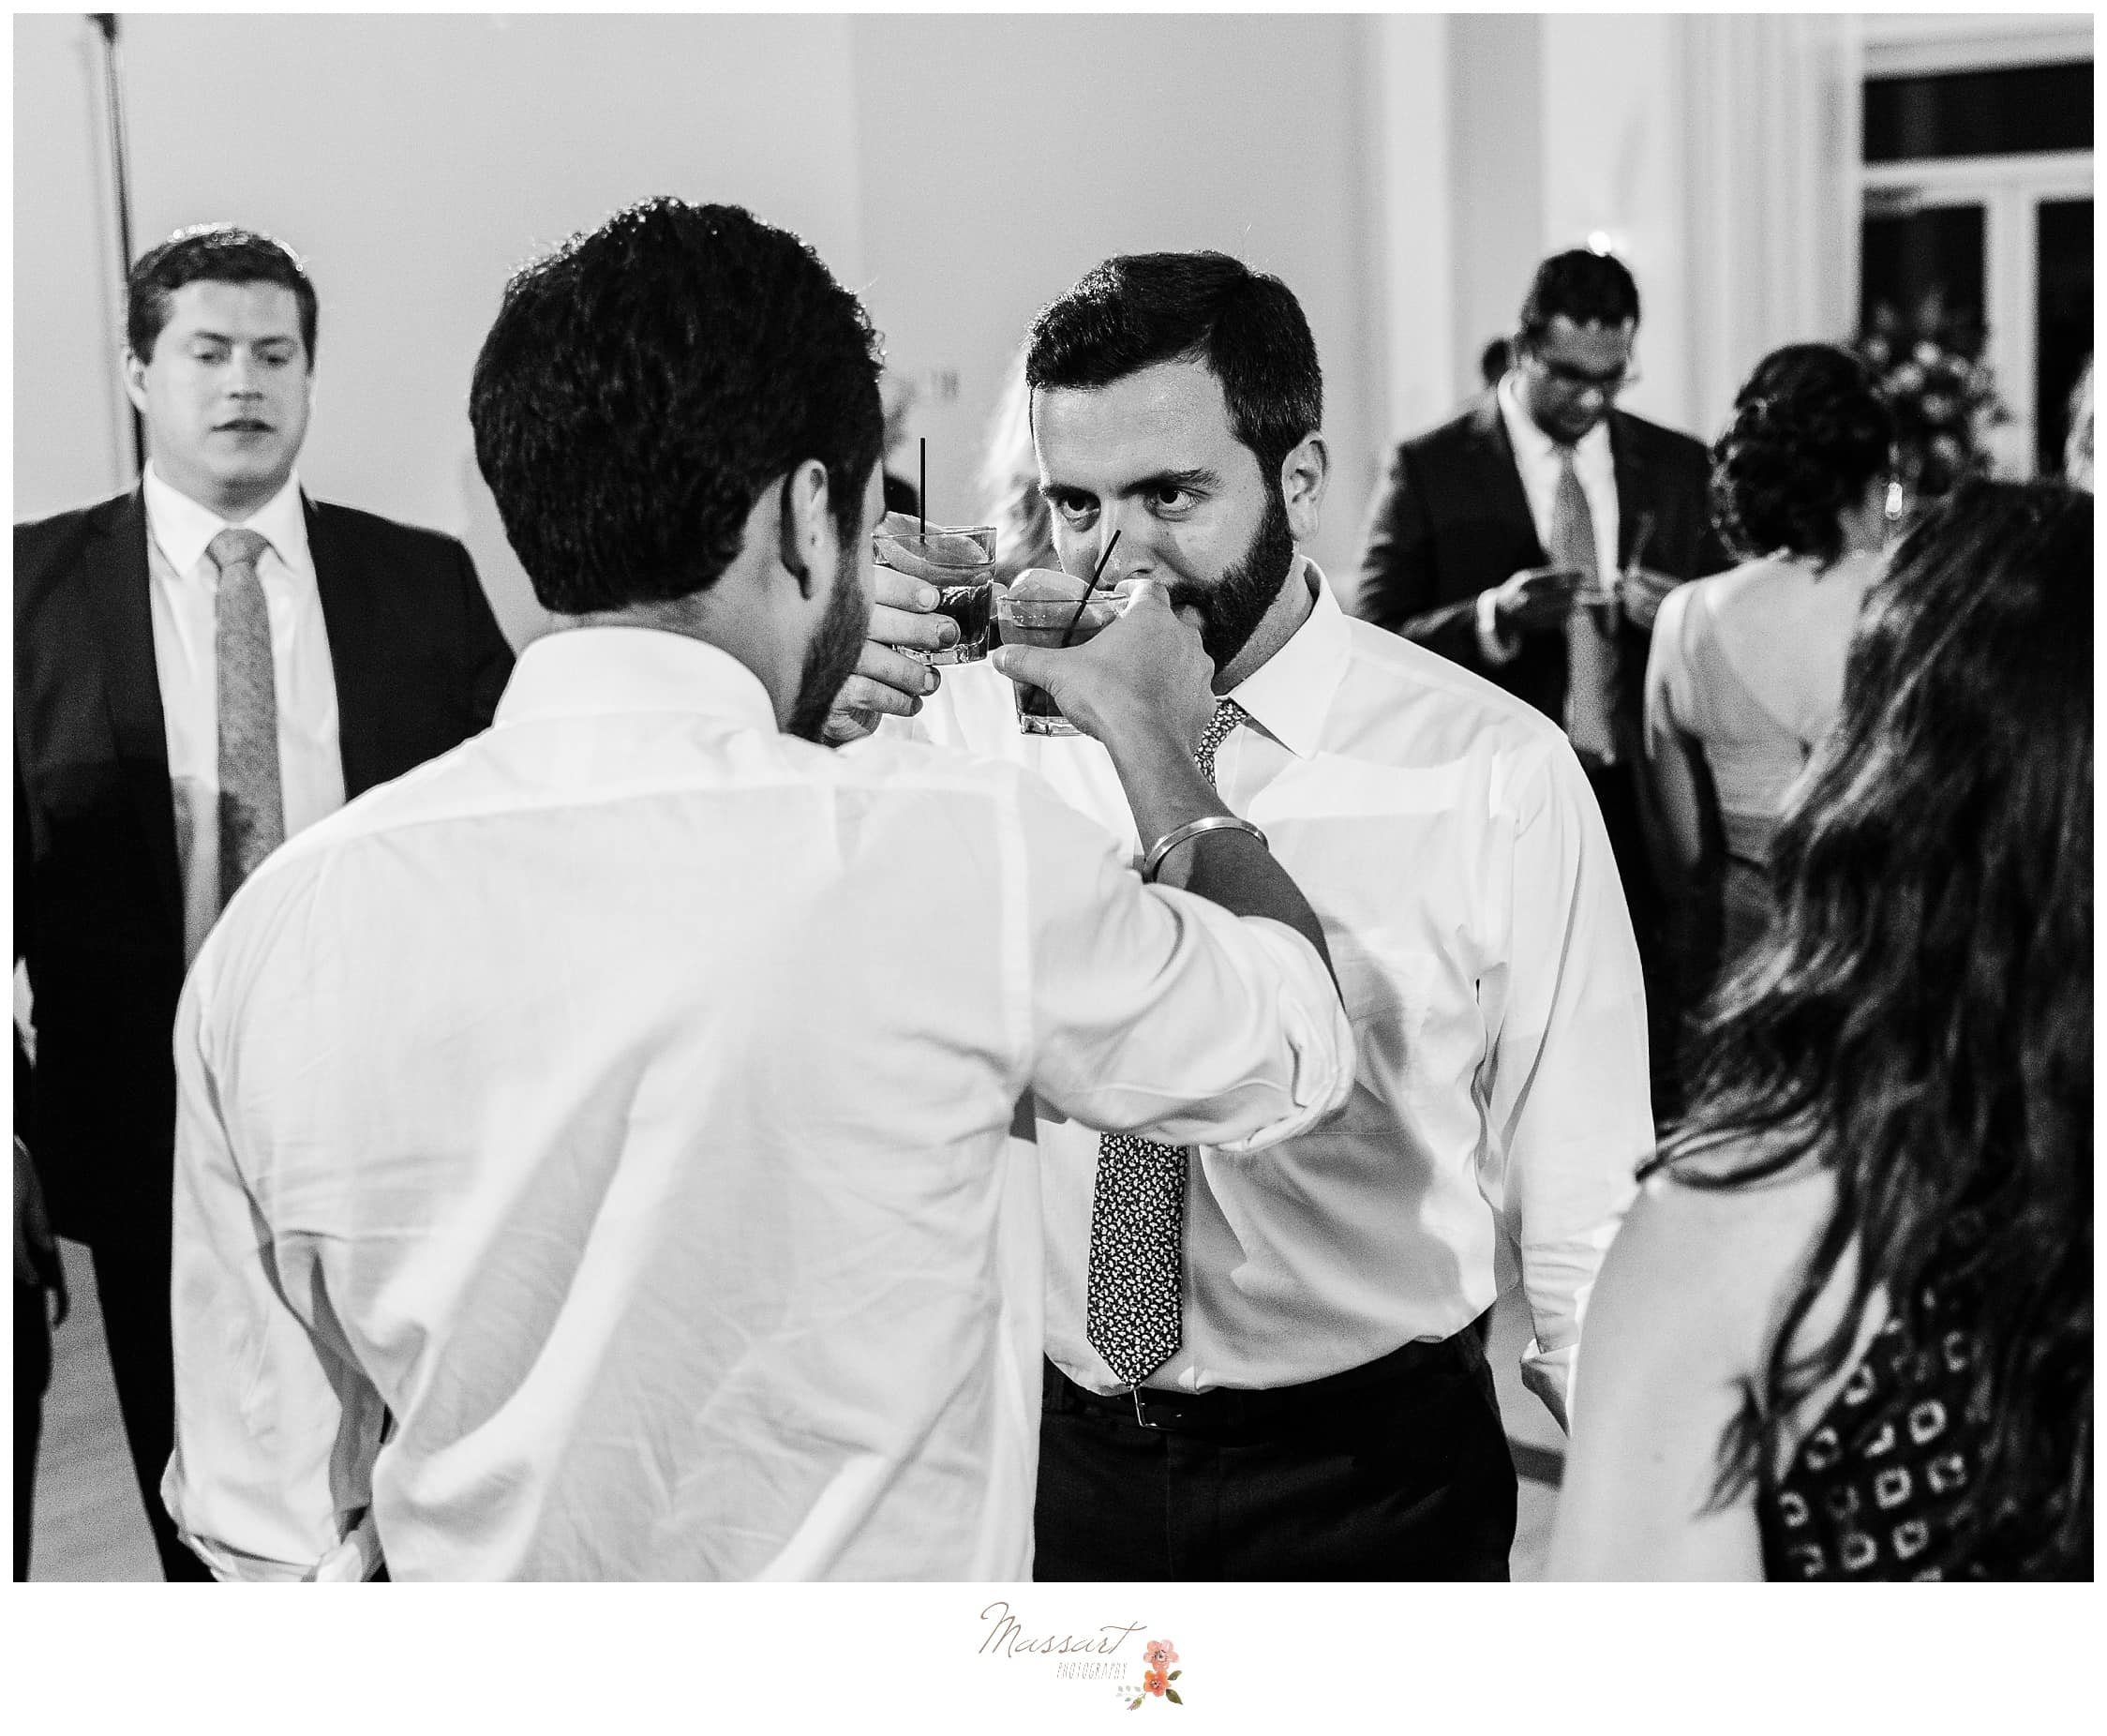 Groom and his friends sharing a toast at the wedding reception photographed by Massart Photography Rhode Island